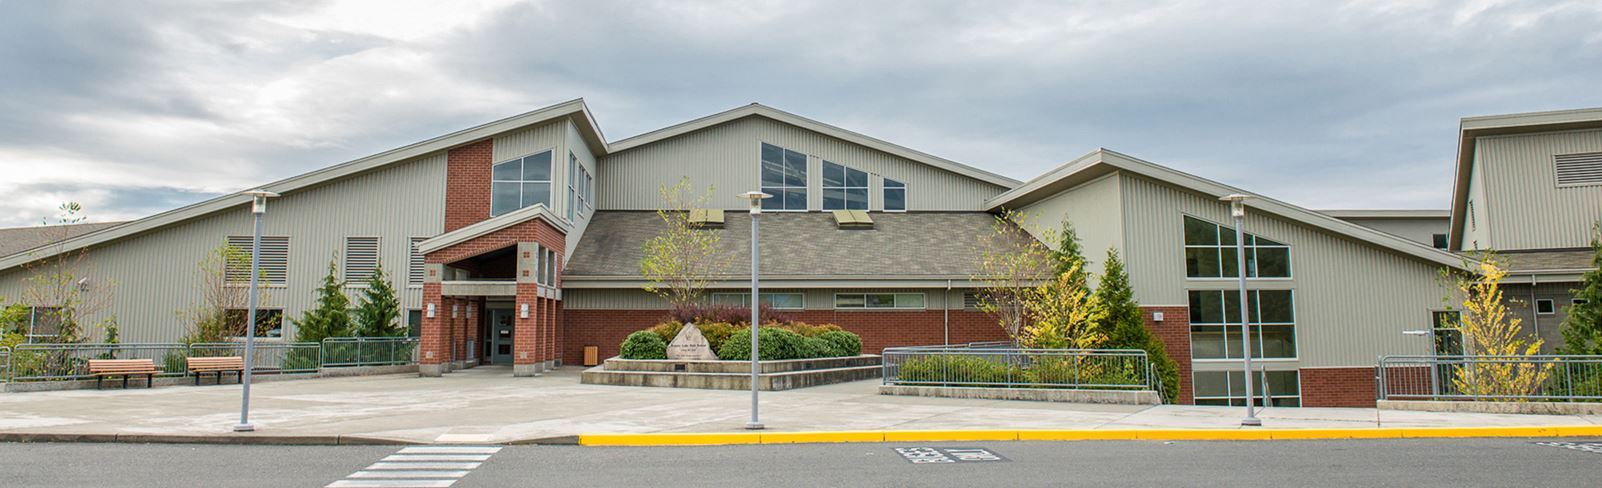 tehaleh-Bonney-Lake-High-School.jpg (1)